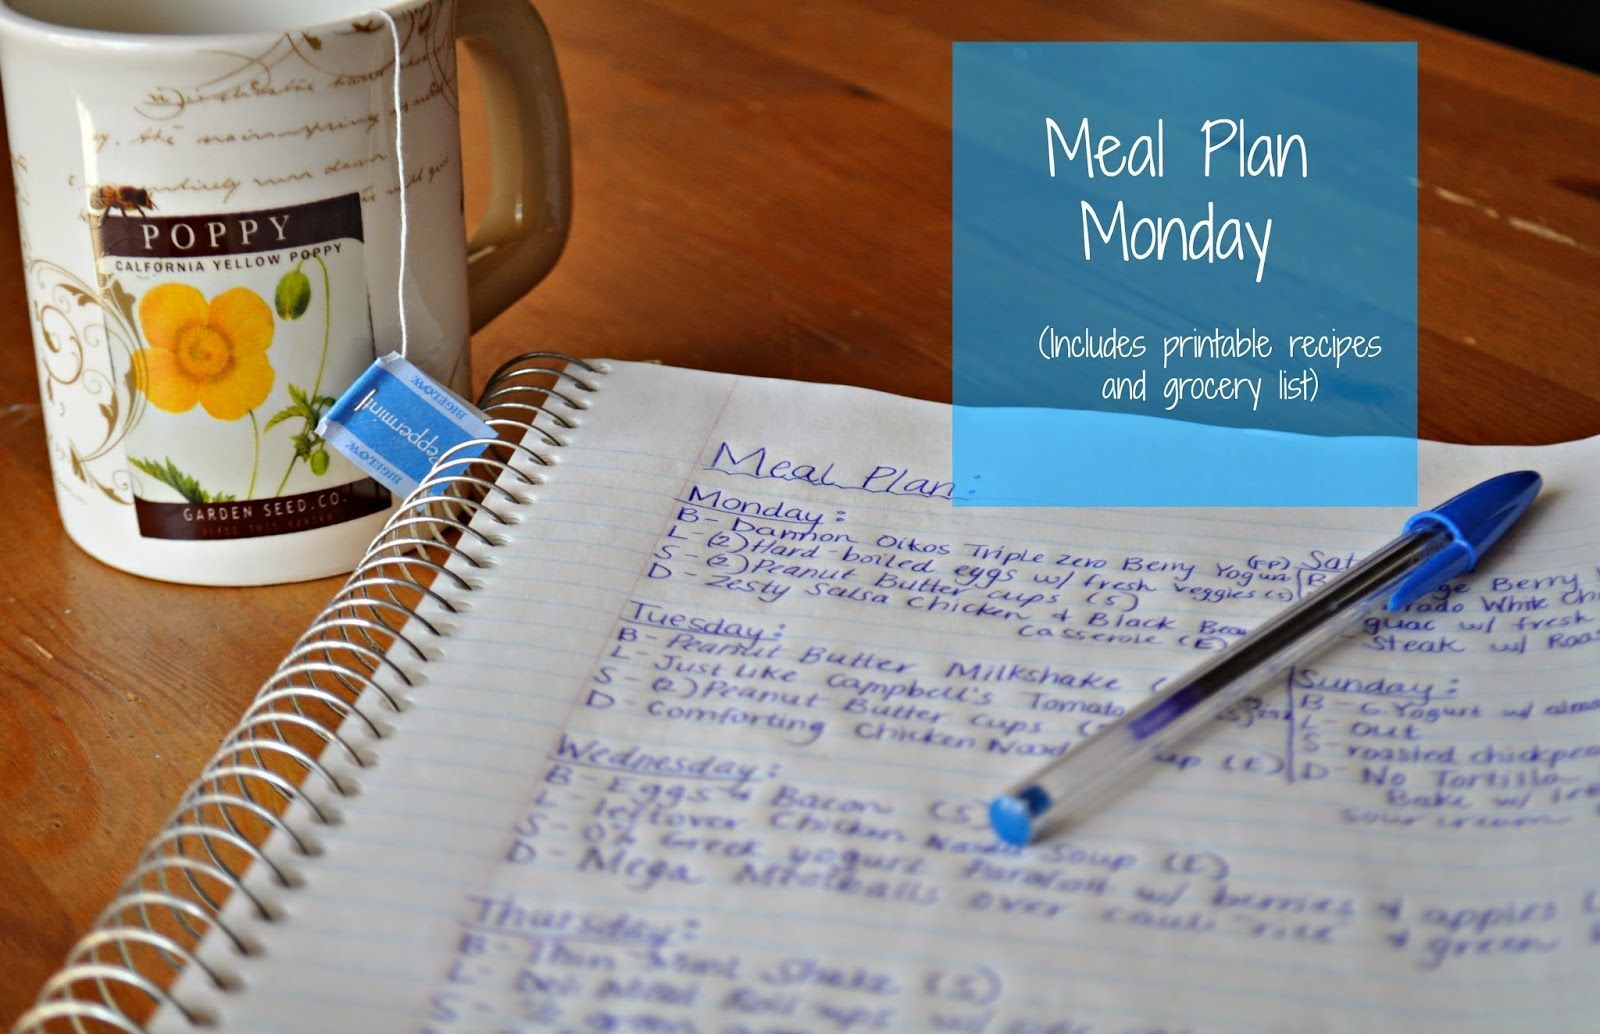 Darcie's Dishes: Meal Plan Monday: 4/27-5/3/14 #thm #trimhealthymama #mealplan #frugal